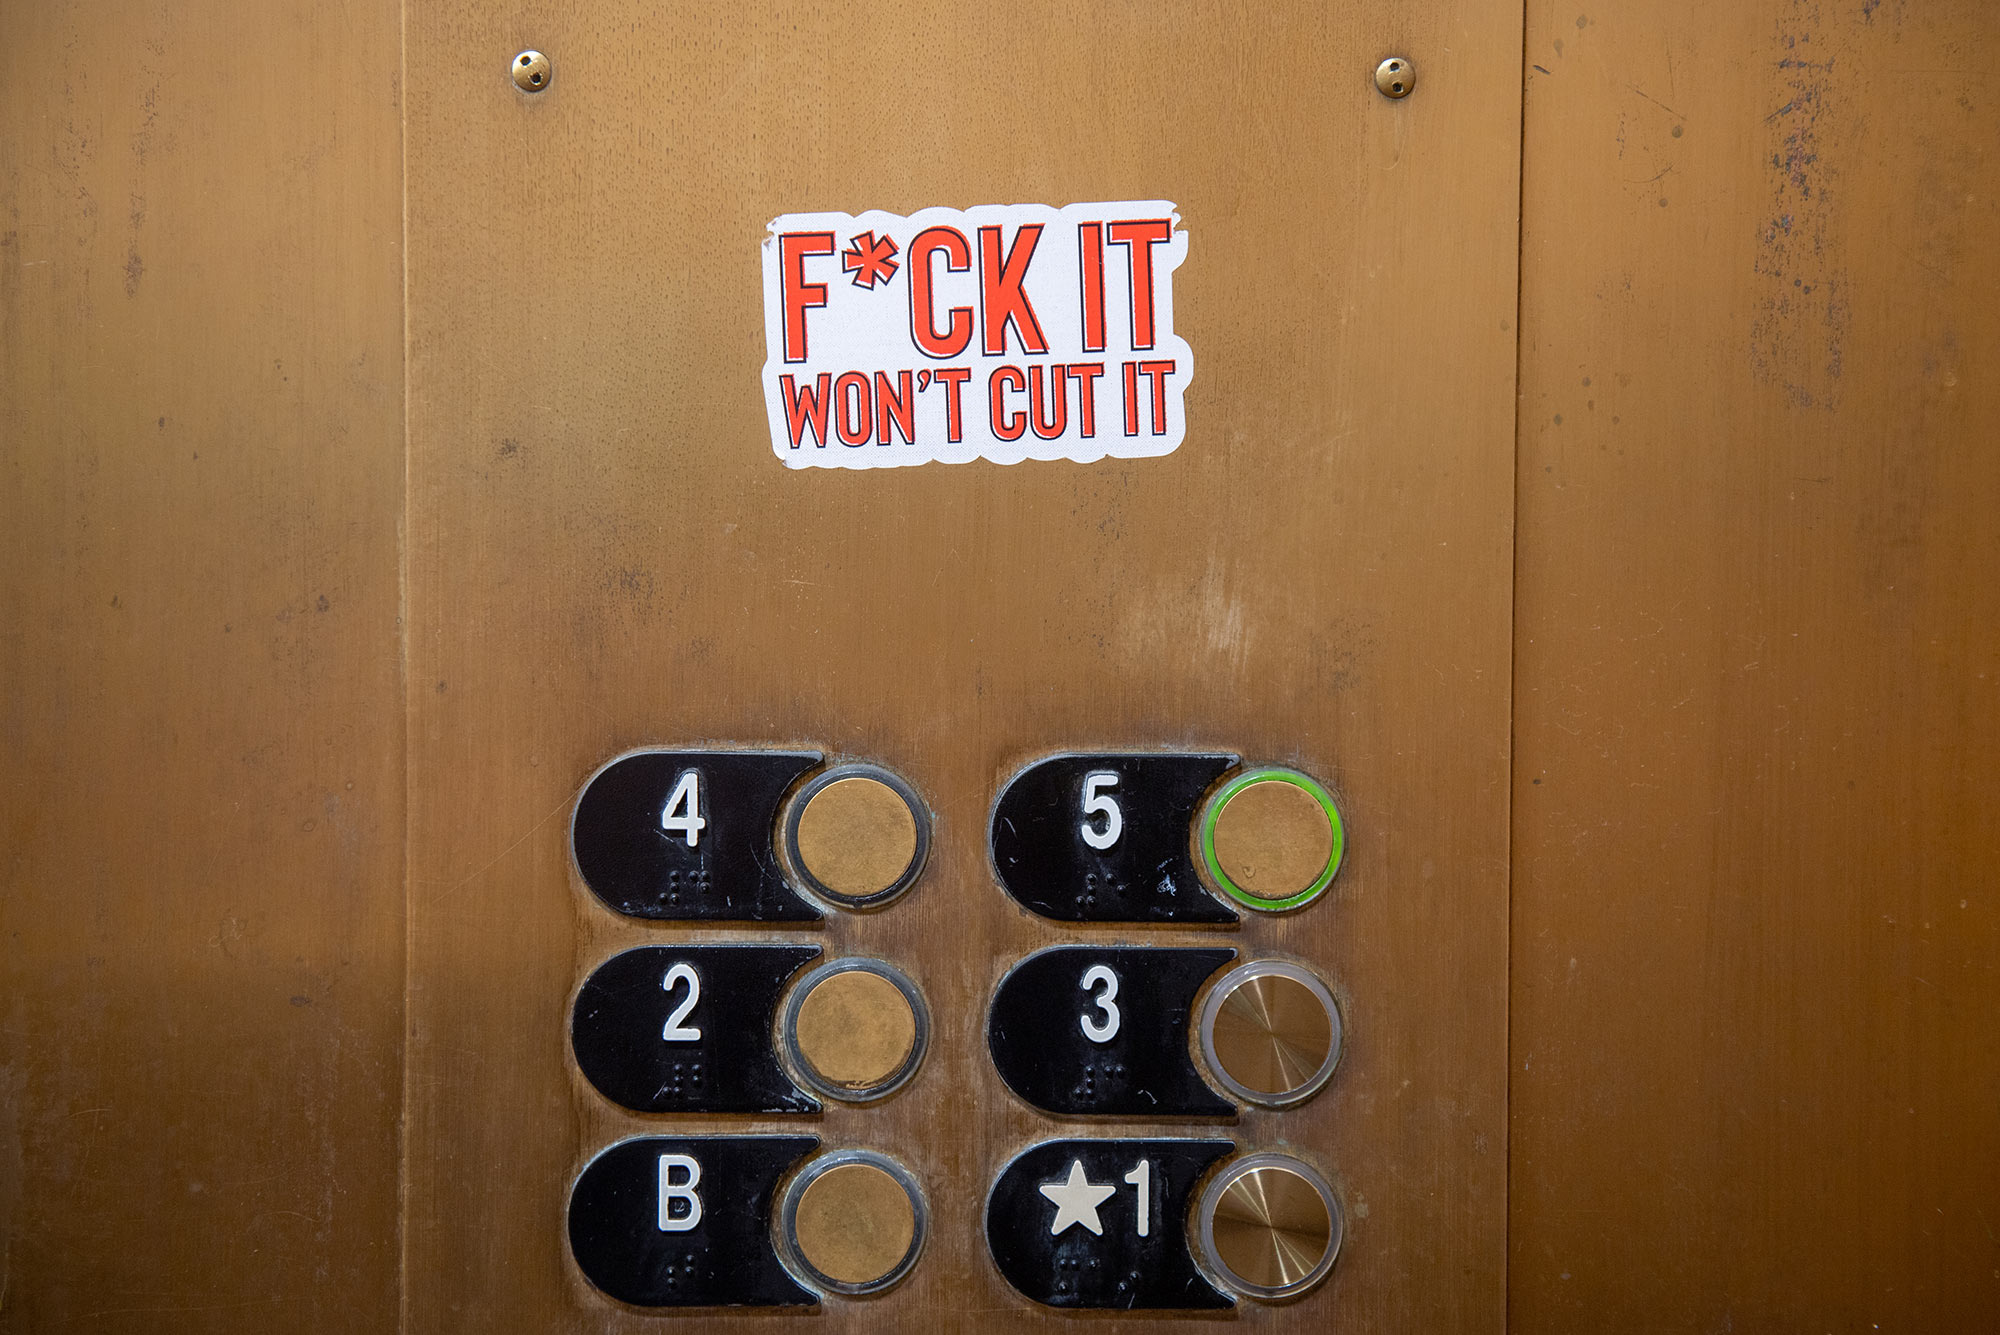 Photo of a f*ck it won't cut it sticker inside a CAS elevator on September 13. The buttons of elevator are seen below.